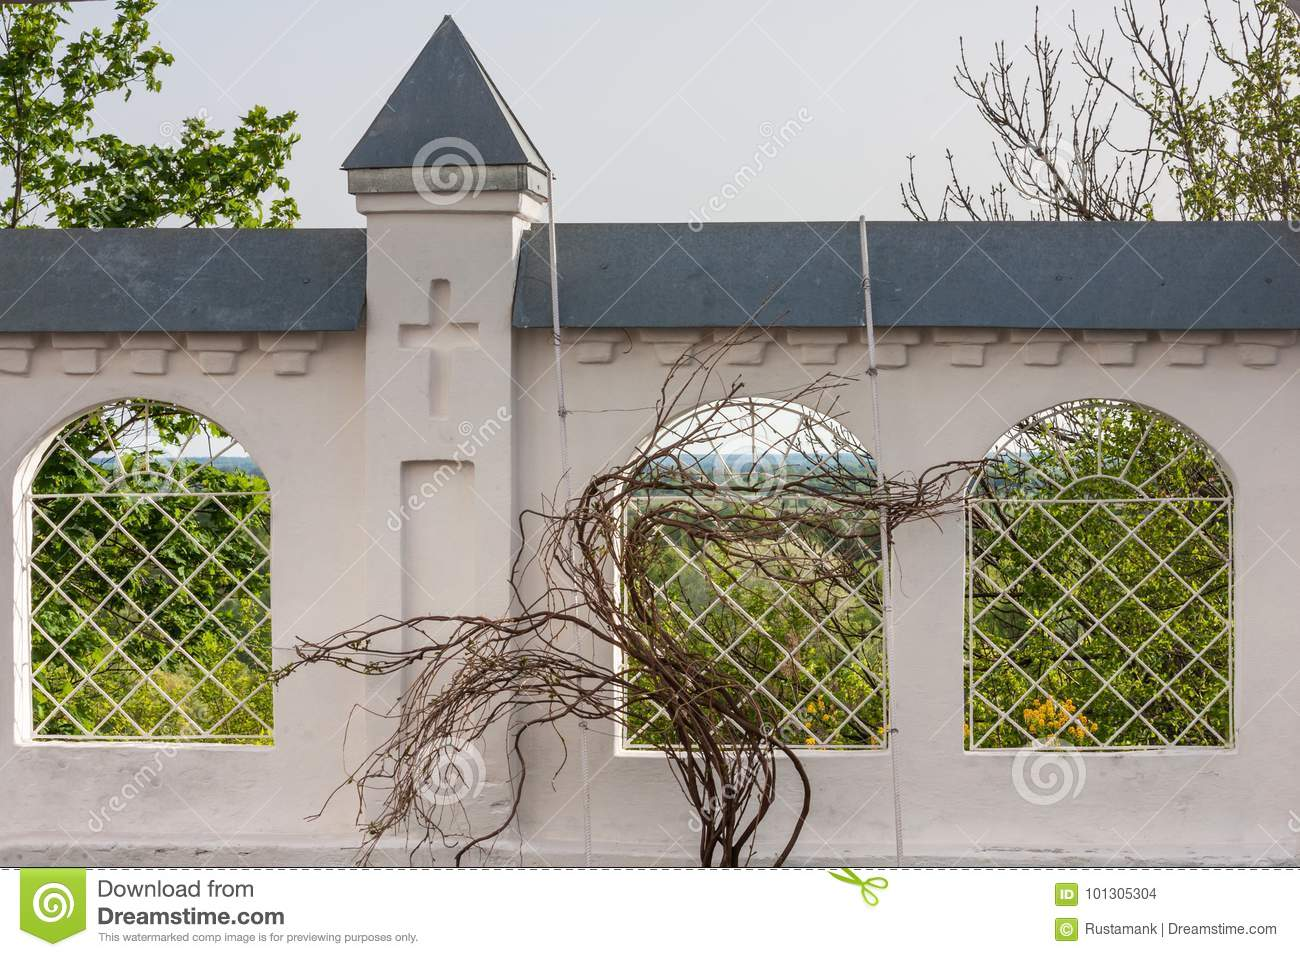 stone fence of an orthodox monastery with lattice windows and a vine